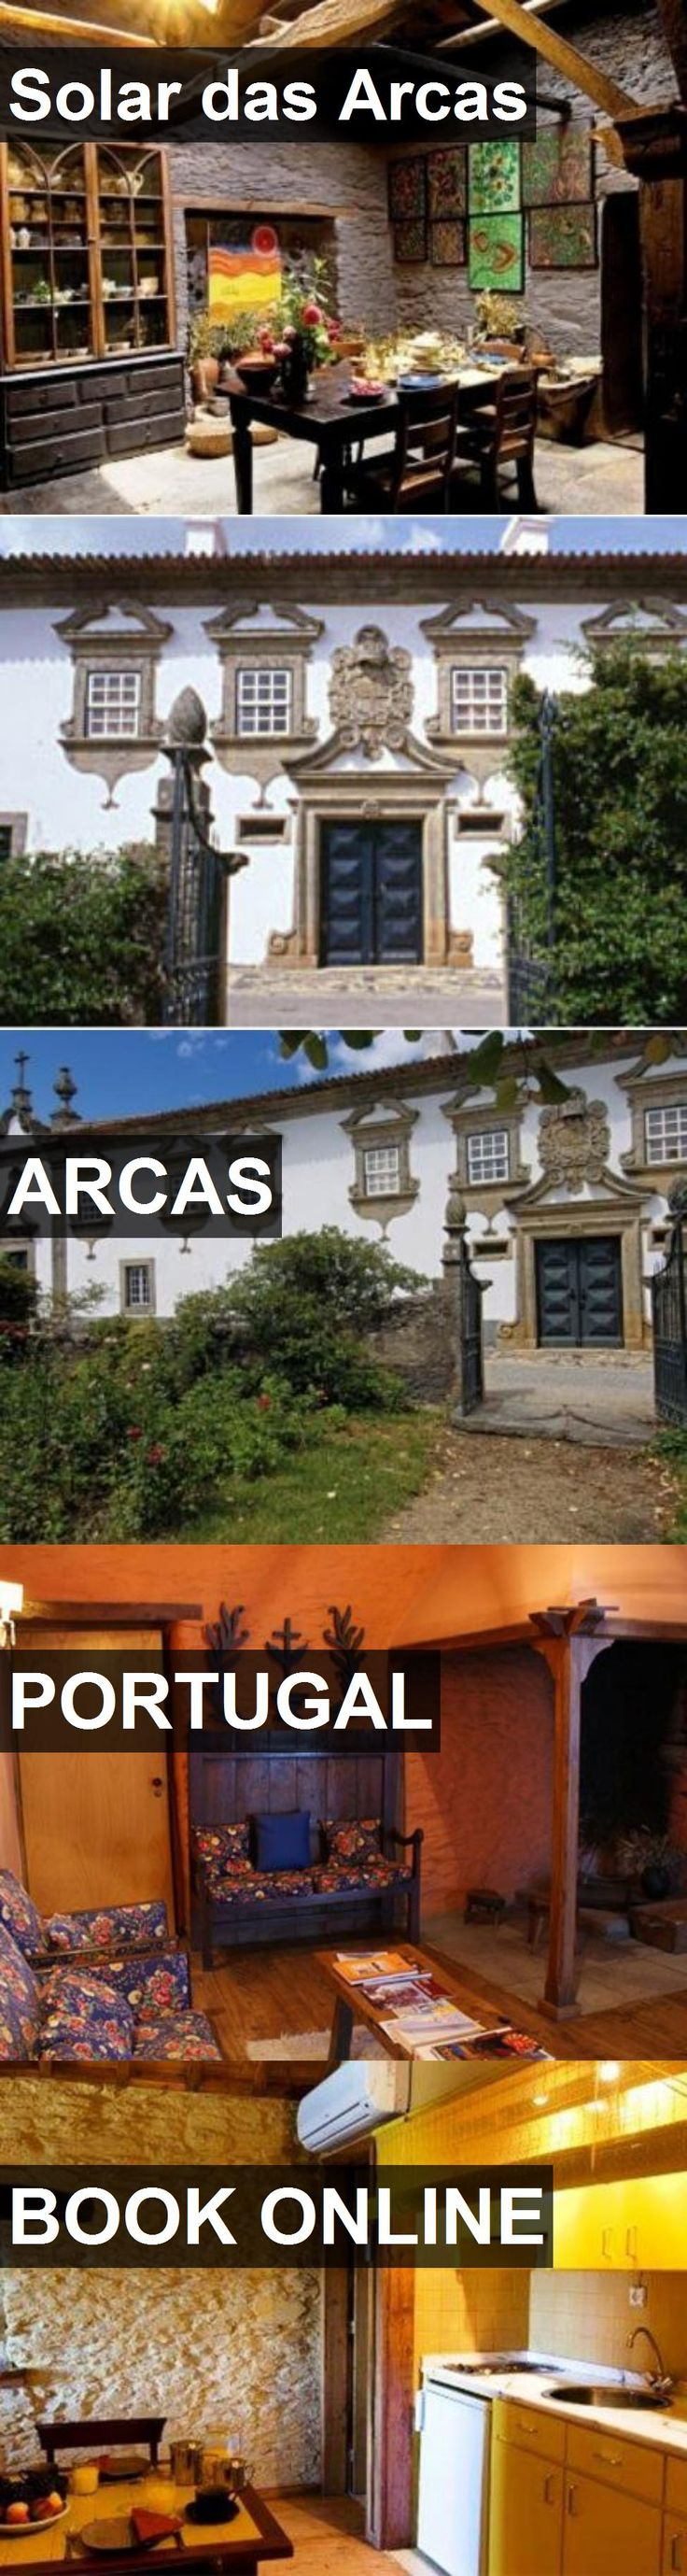 Hotel Solar das Arcas in Arcas, Portugal. For more information, photos, reviews and best prices please follow the link. #Portugal #Arcas #travel #vacation #hotel